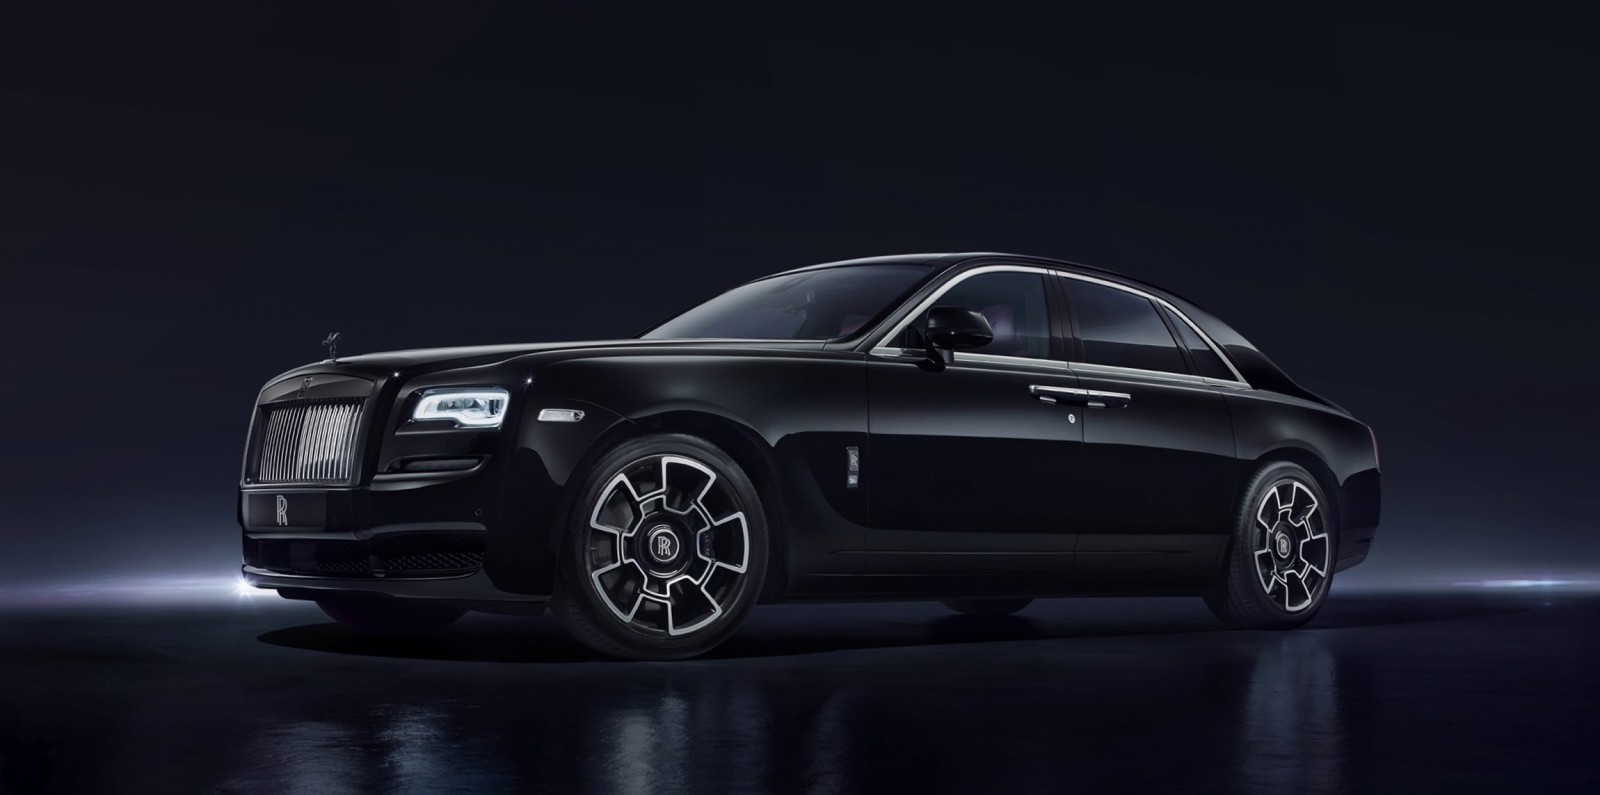 2017 rolls royce black badge ghost and wraith best of geneva 2016. Black Bedroom Furniture Sets. Home Design Ideas